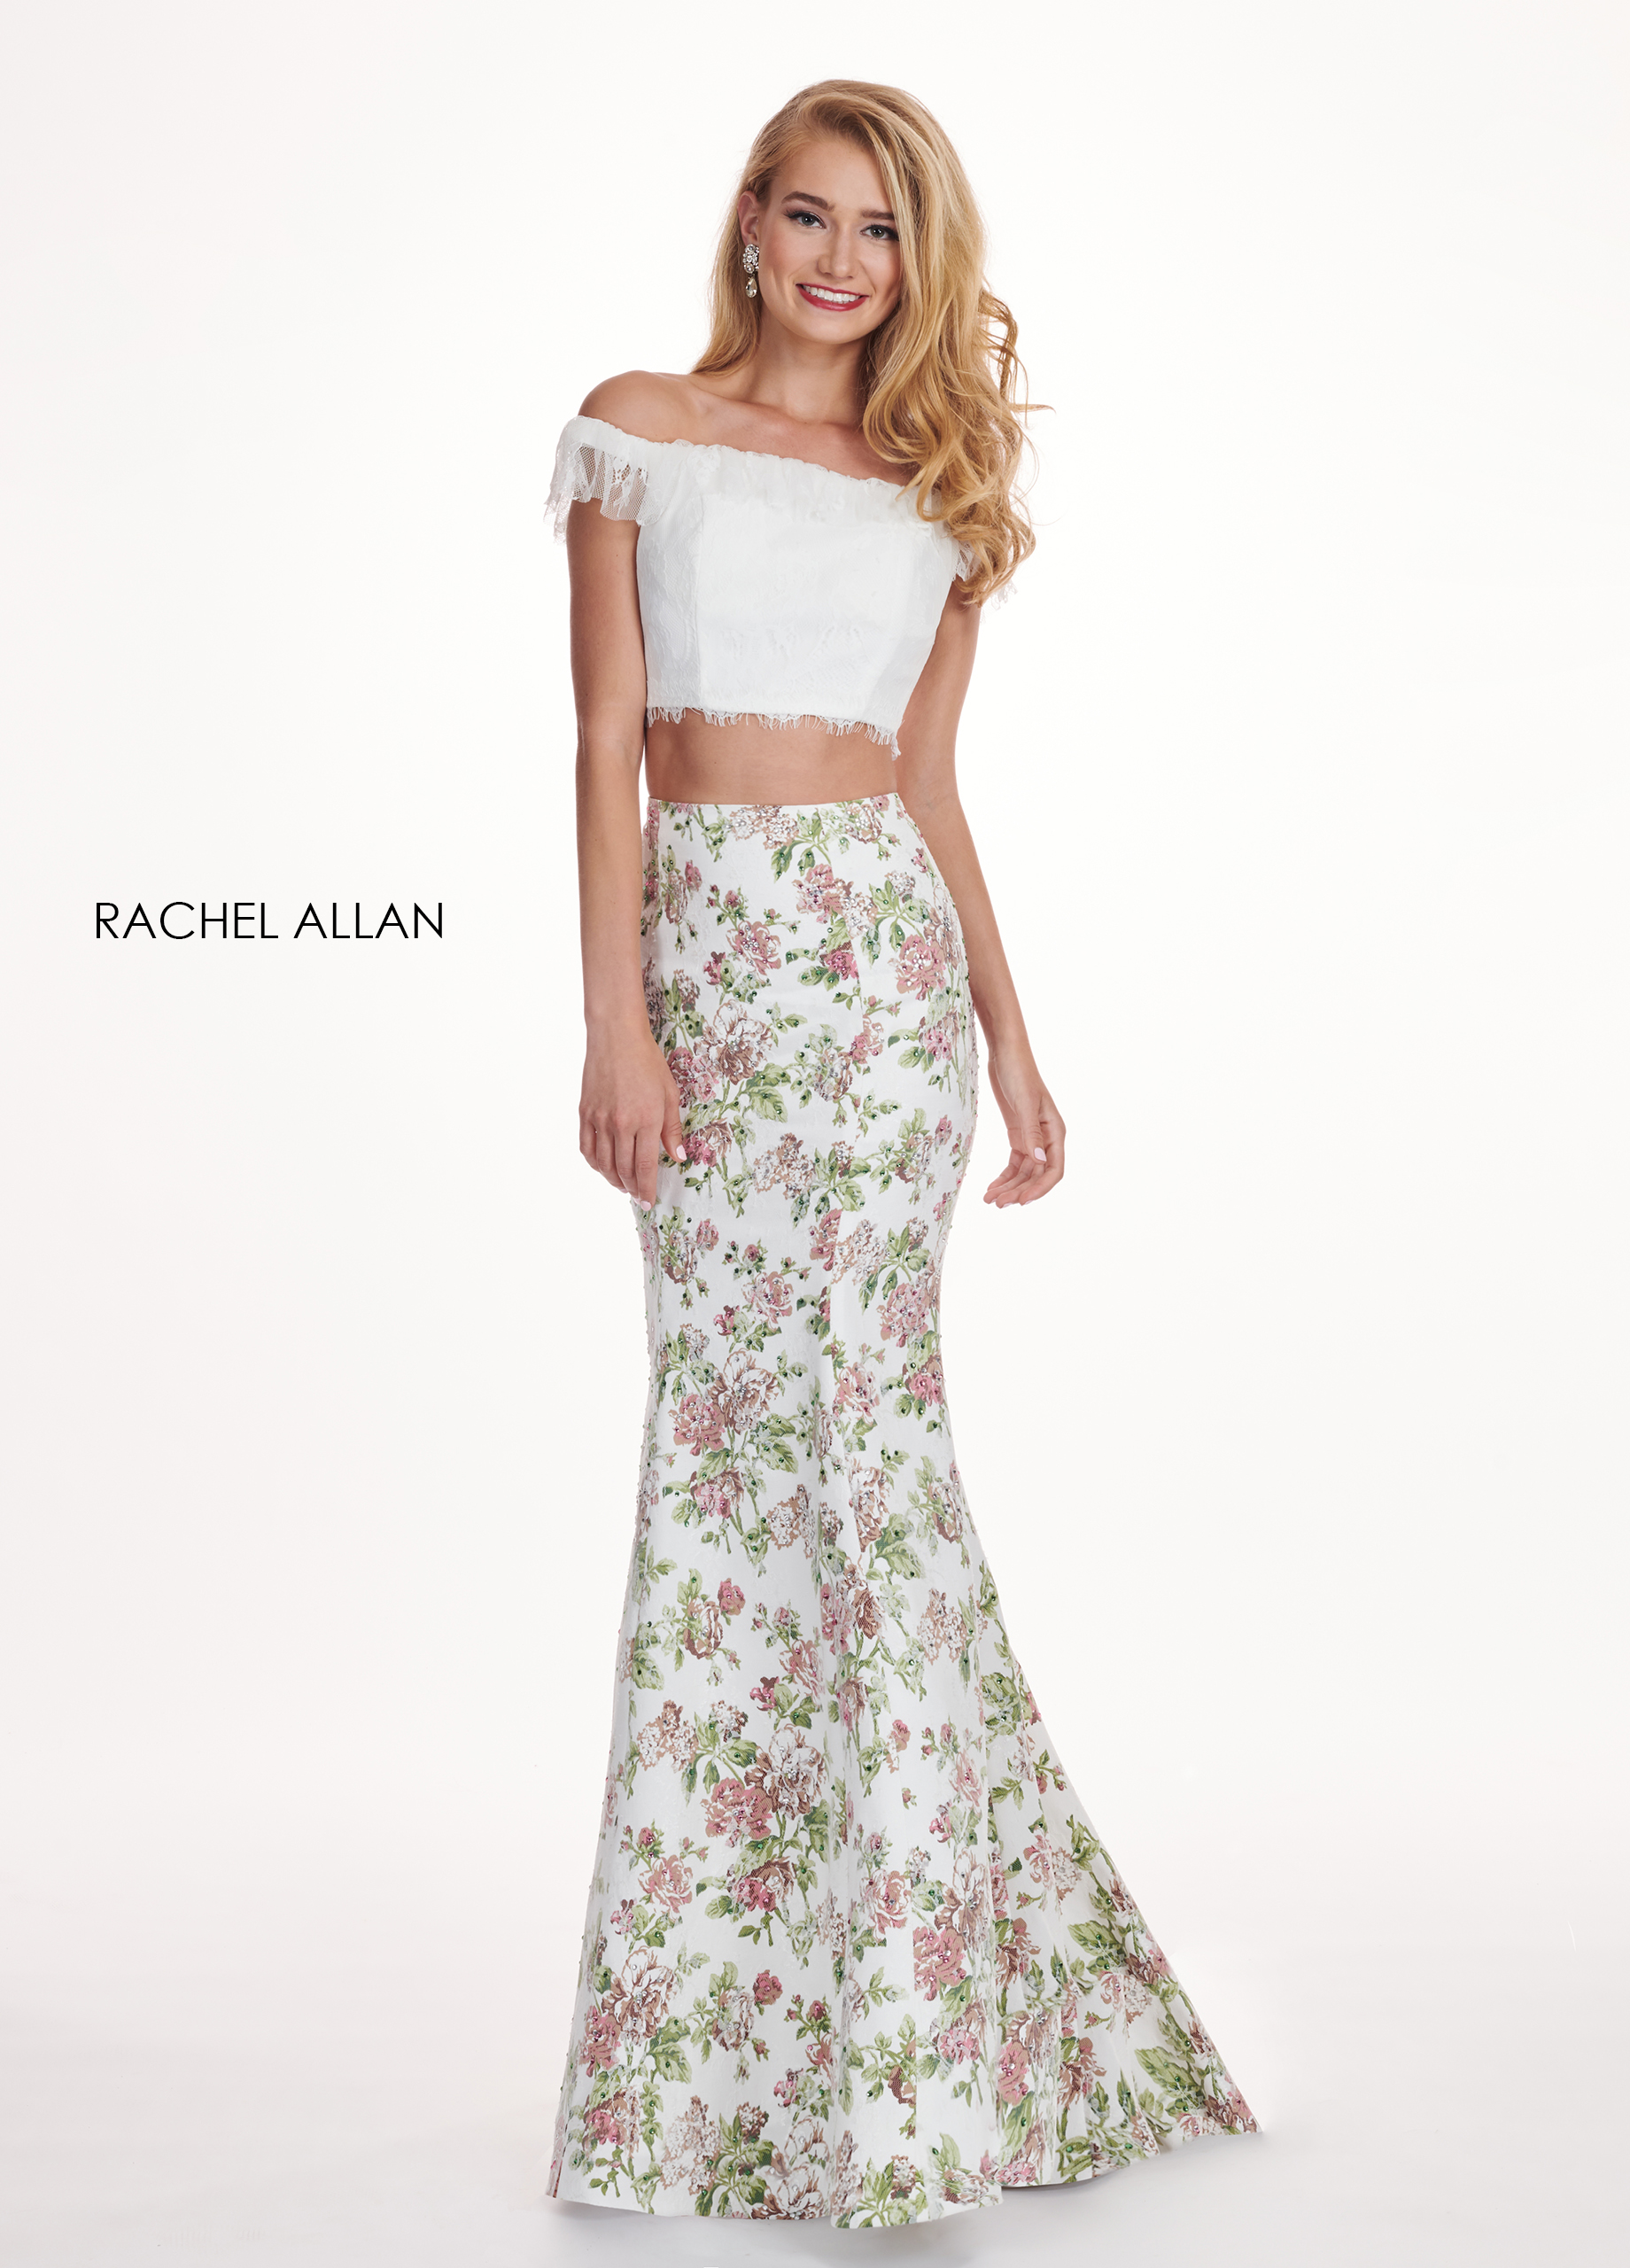 Off The Shoulder Two-Piece Prom Dresses in White Color